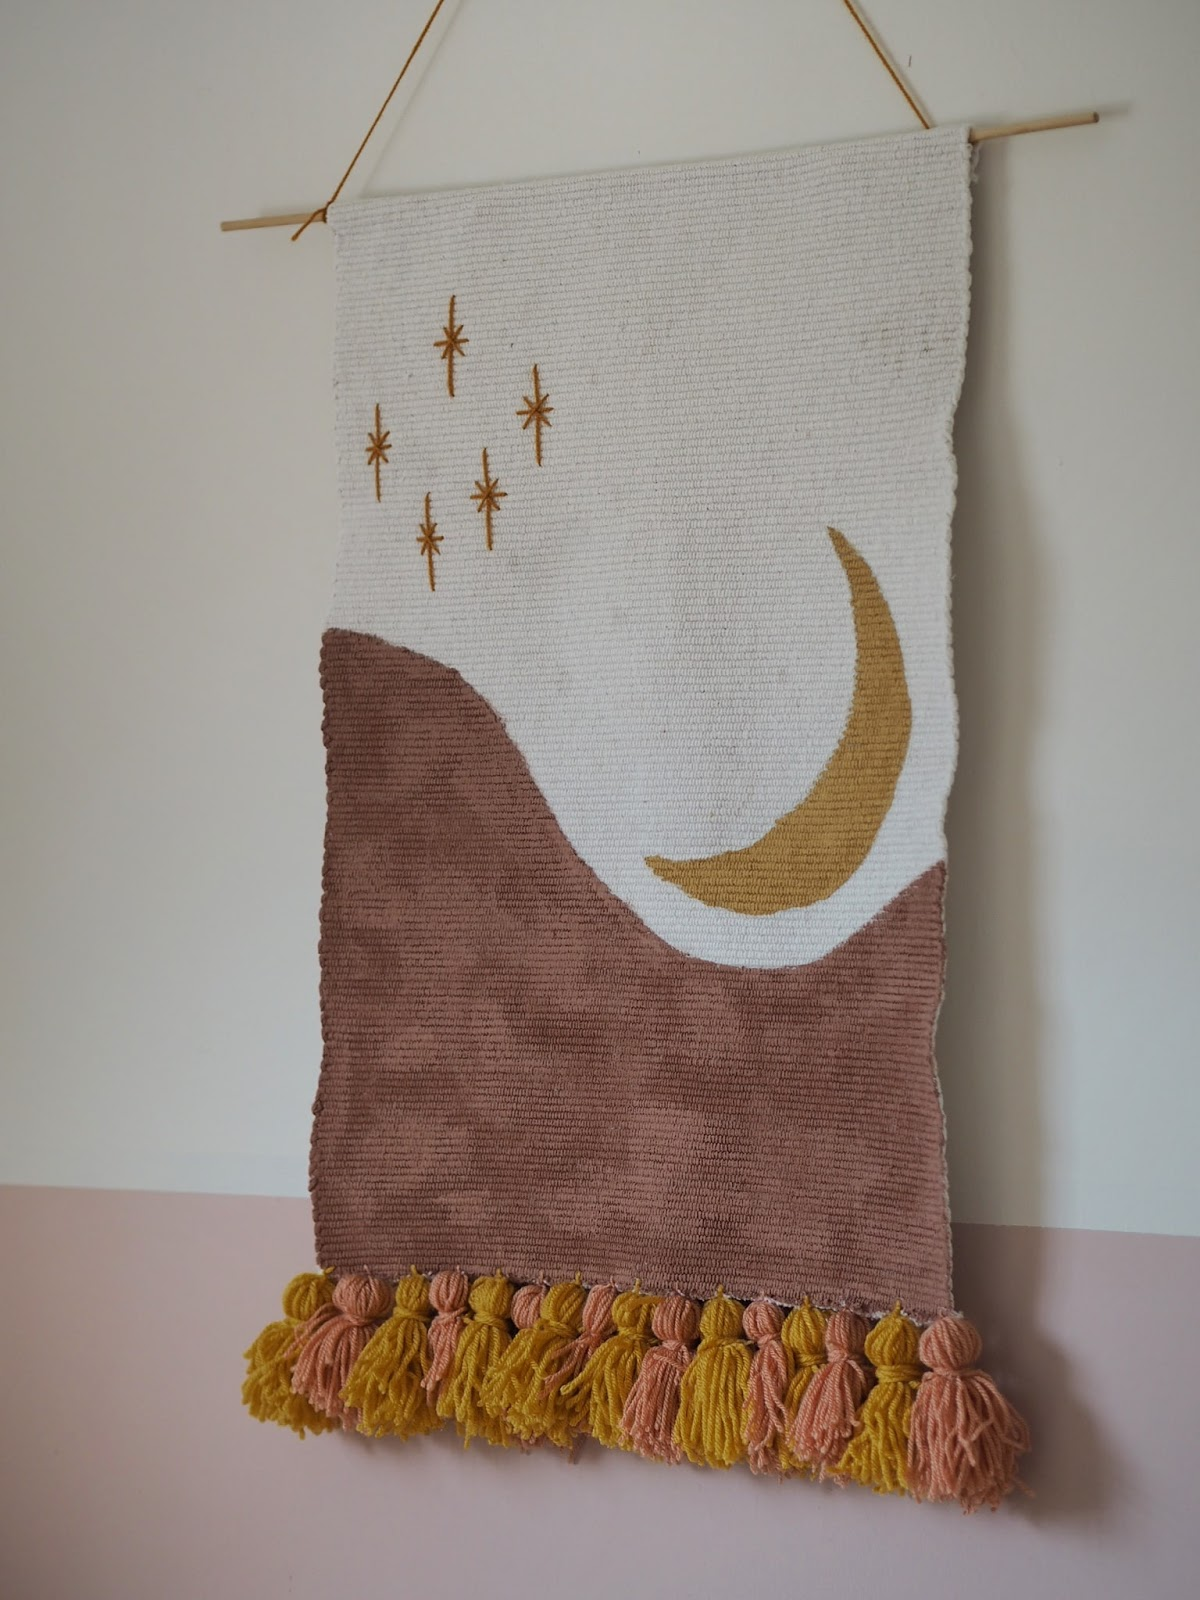 How to make a DIY wall hanging from an old bath mat. In a boho style, and featuring woollen tassels and a hand-painted moon and stars pattern, this feature is the perfect accessory to any blank wall. Simple, low budget DIY tutorial craft project.